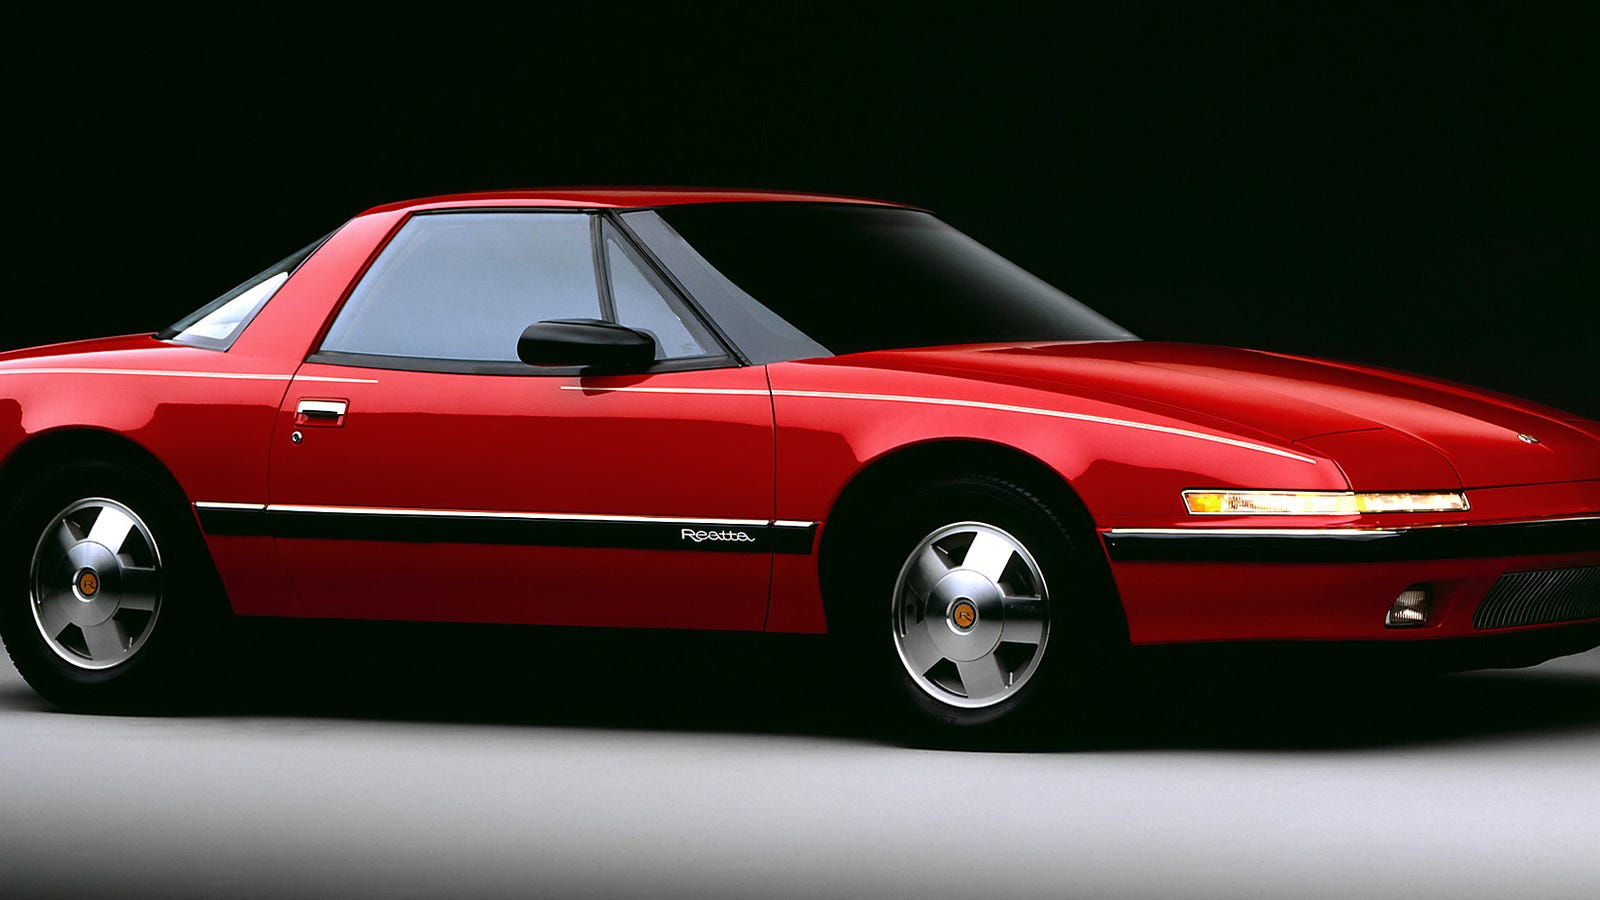 Ygh Sulrjm Ji Vjlaug as well Buickriver in addition Img X likewise Buick Century Riviera For Sale also Riv. on buick reatta